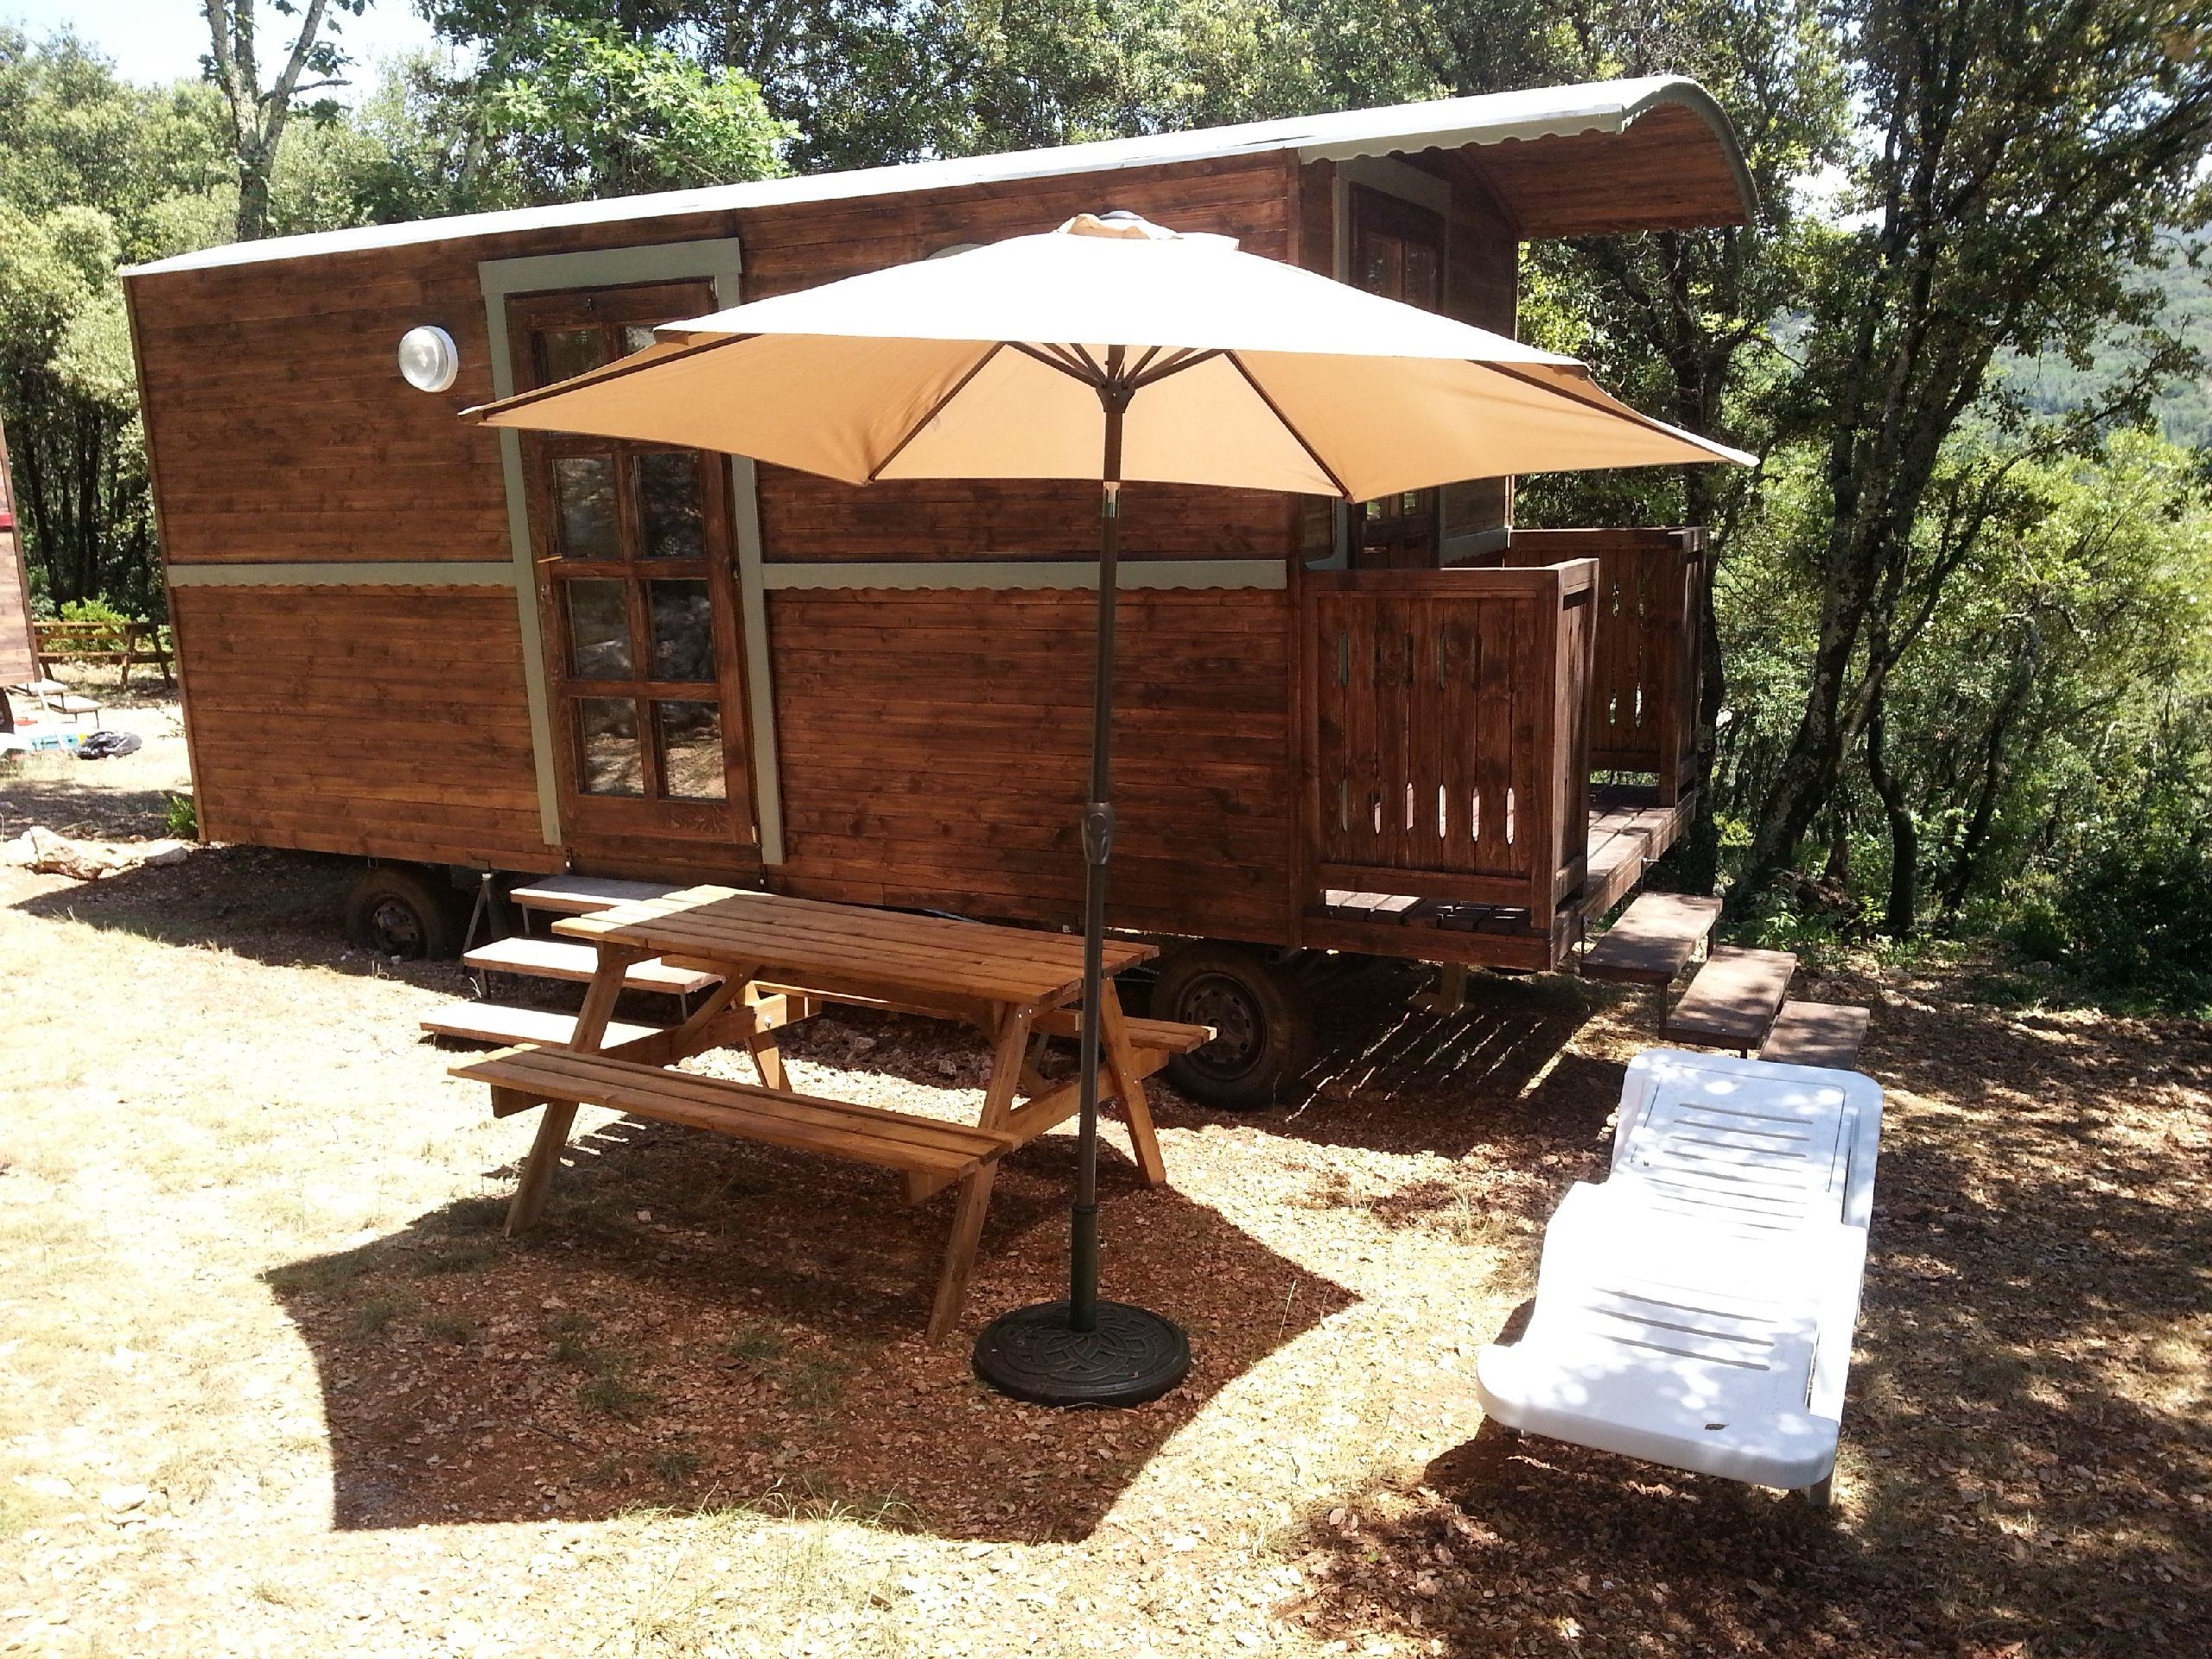 Locatifs - Roulotte Camping Sans Sanitaires - Camping Ibie